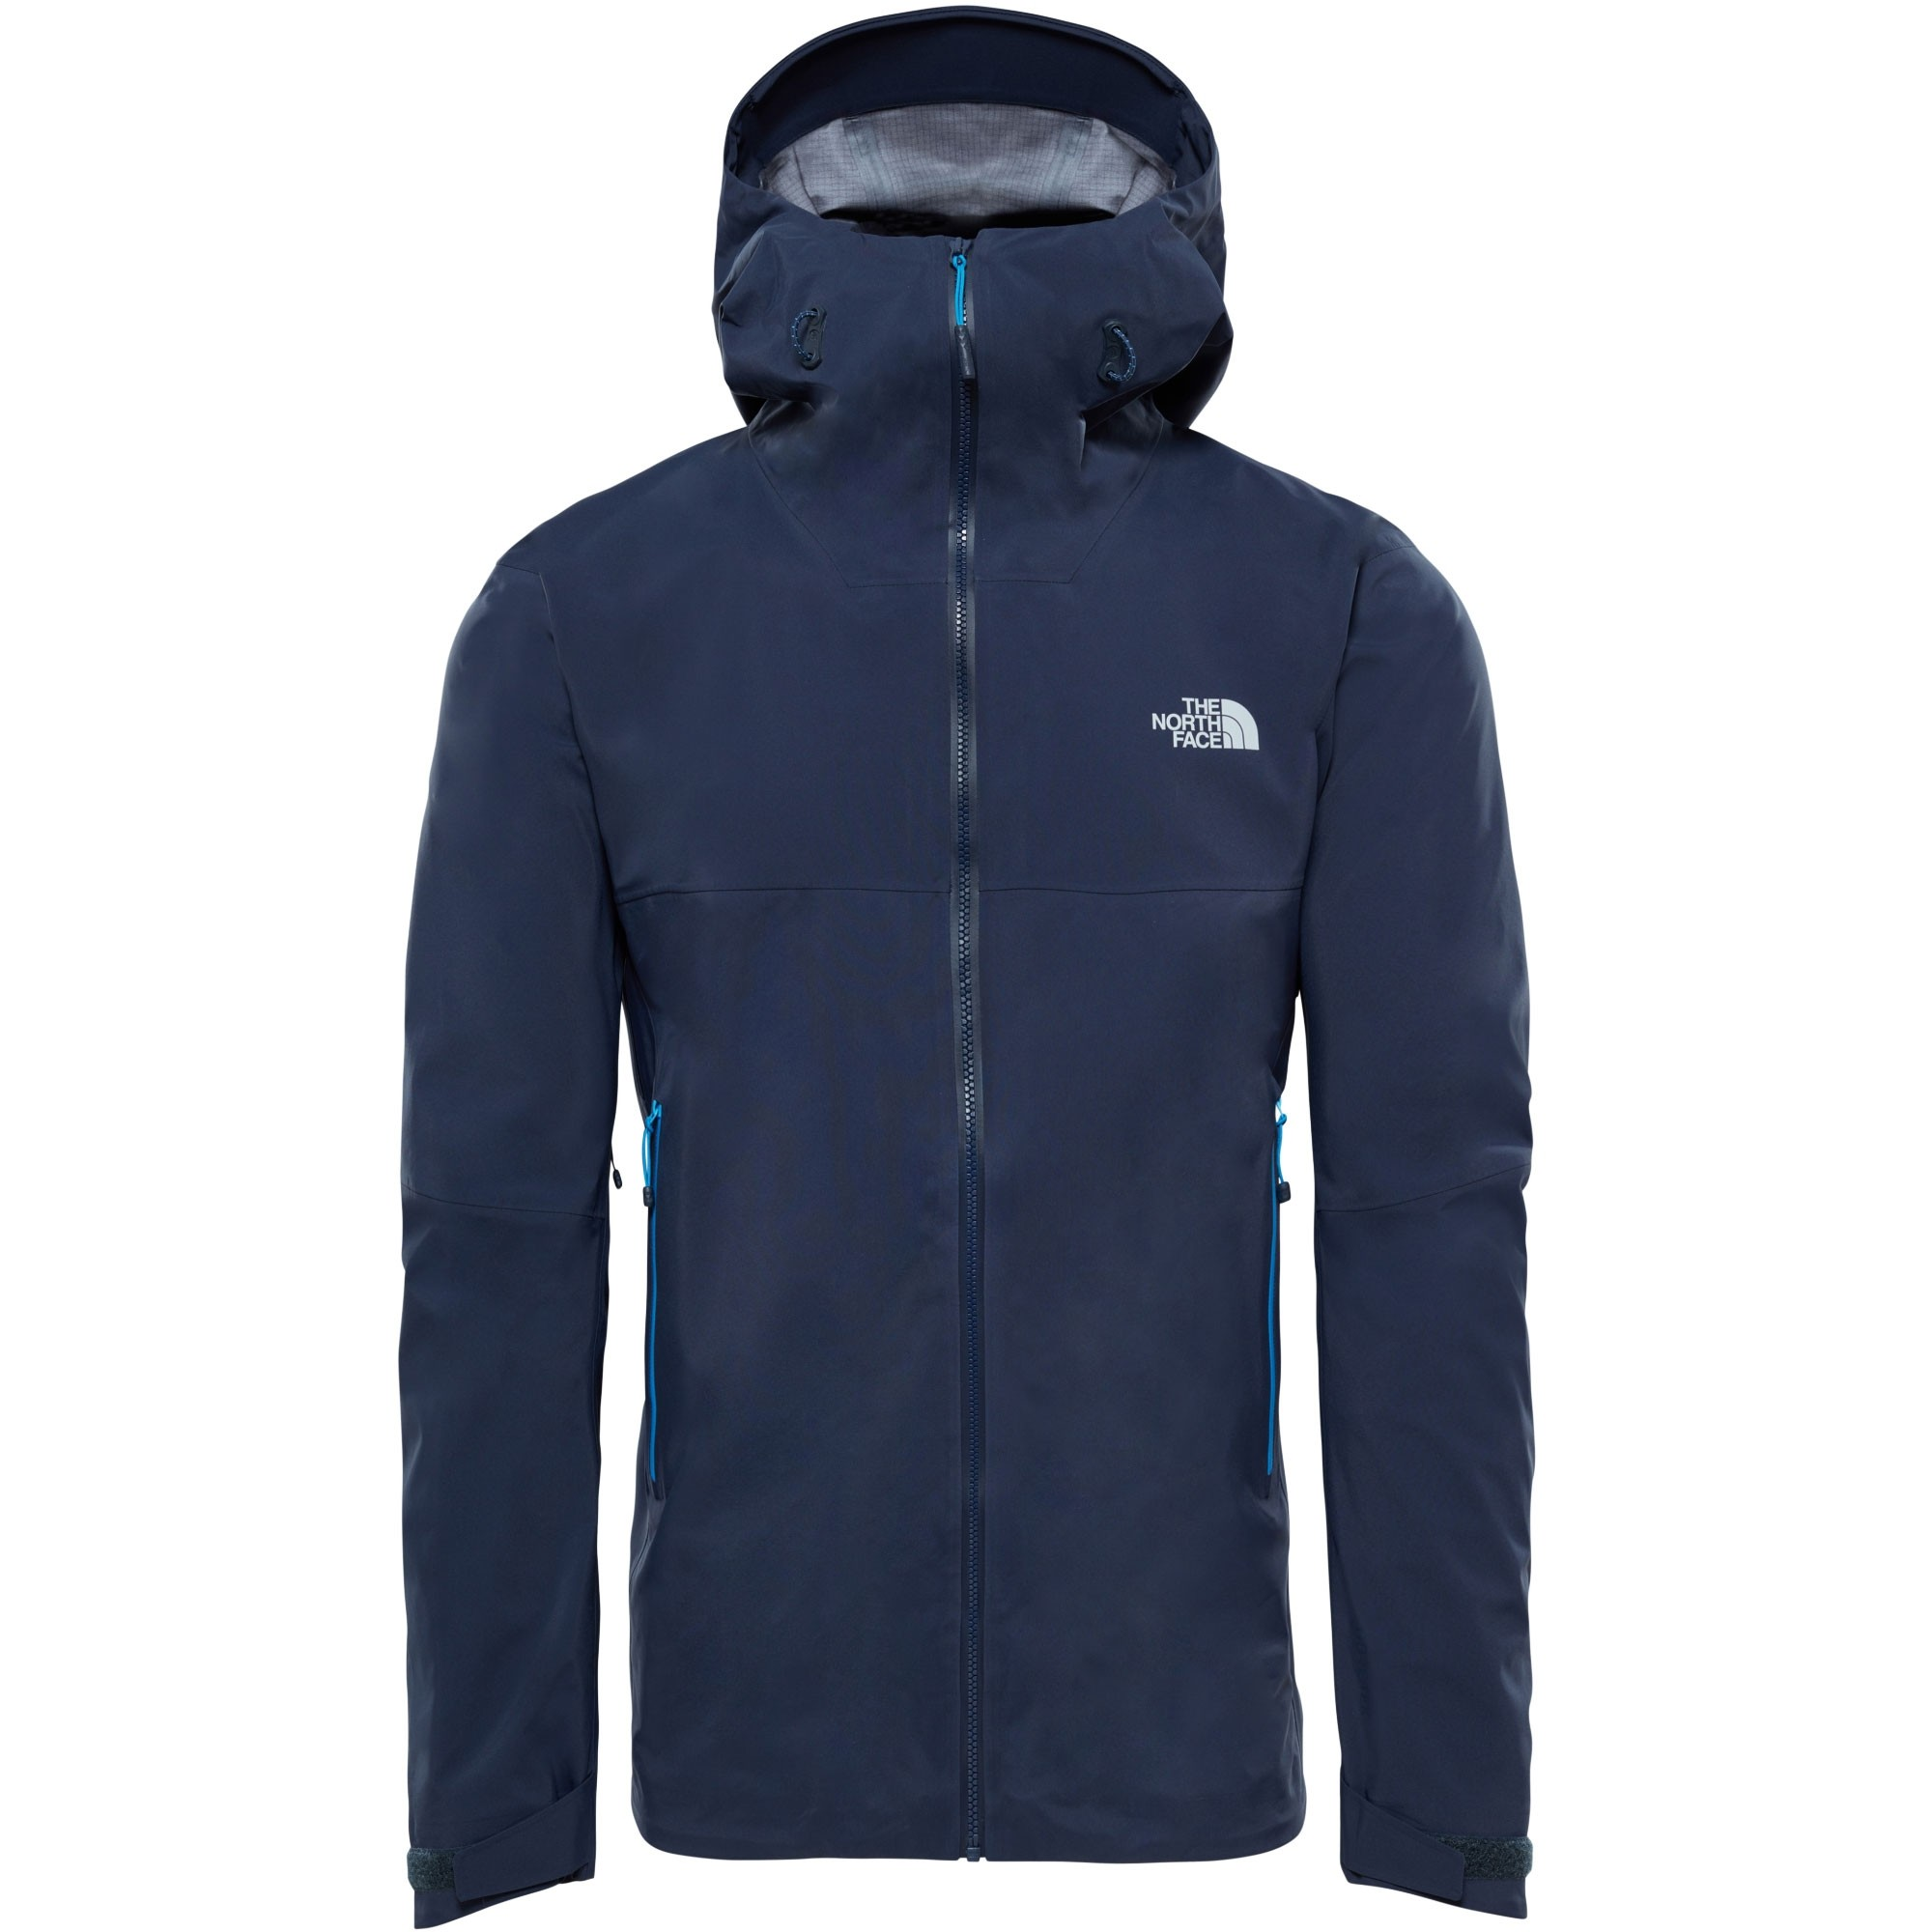 The-North-Face-Mens-Point-Five-GTX-Jacket-Urban-Navy-0-W17